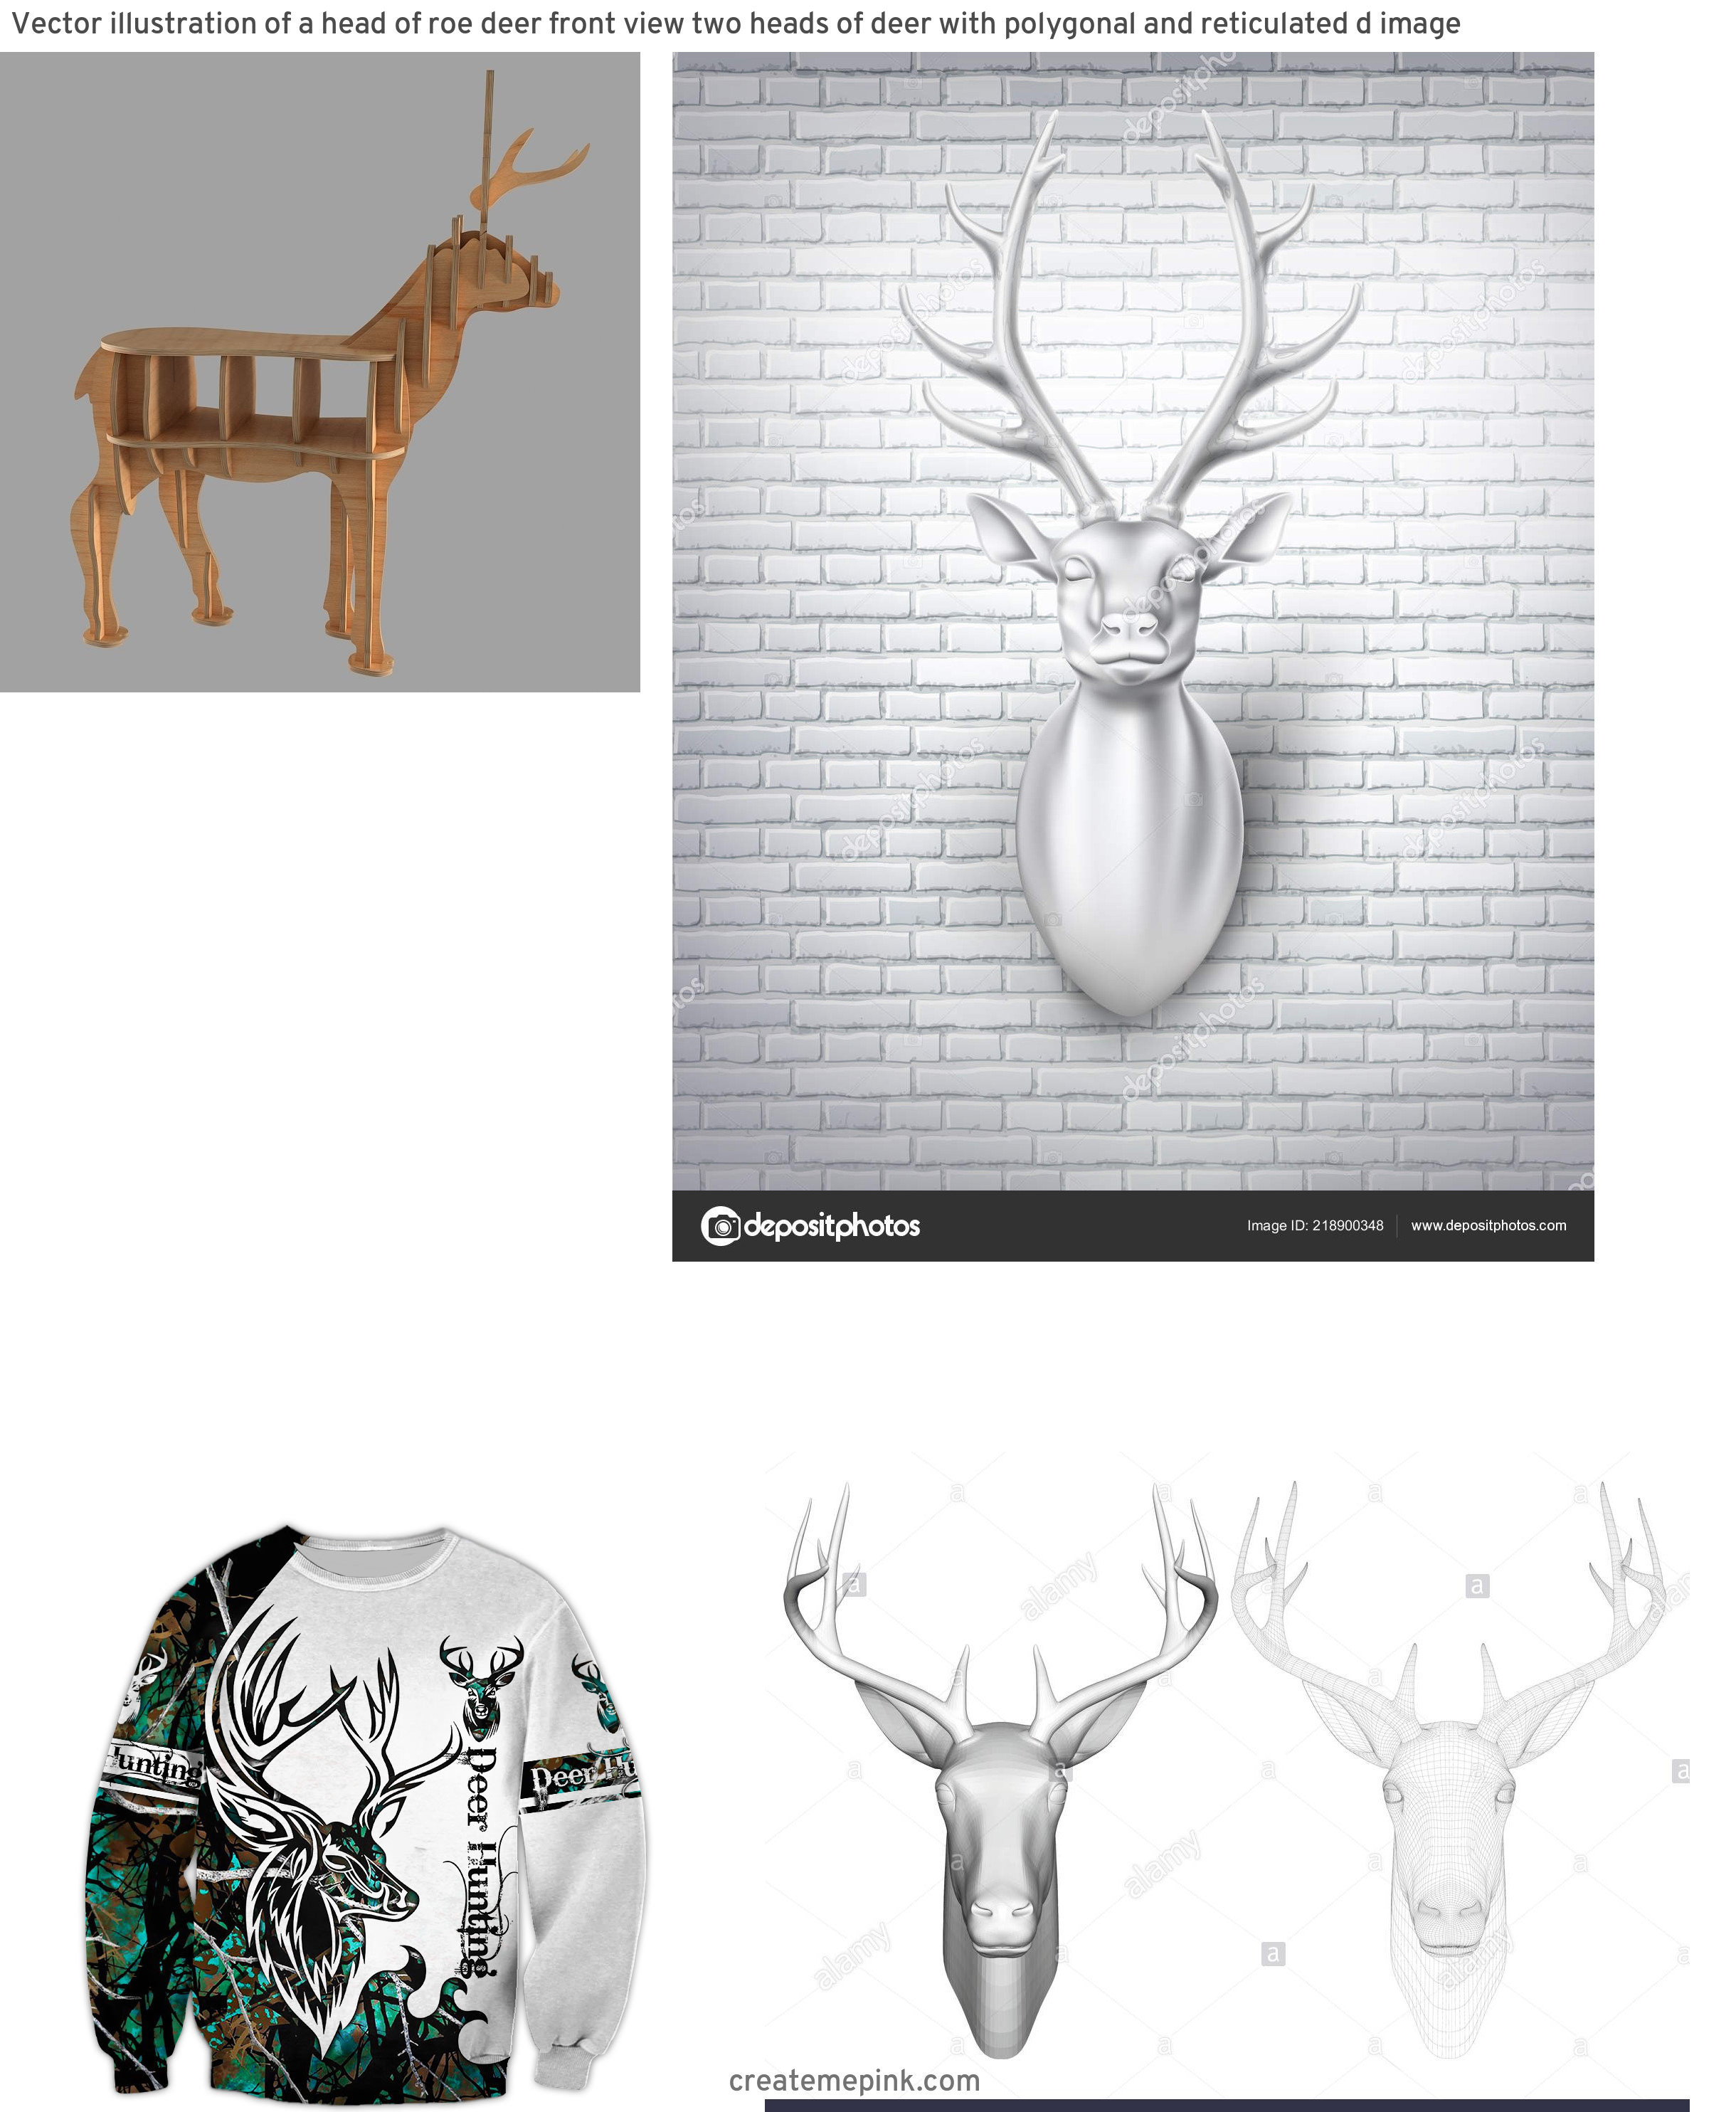 3D Vector Of A Deer: Vector Illustration Of A Head Of Roe Deer Front View Two Heads Of Deer With Polygonal And Reticulated D Image